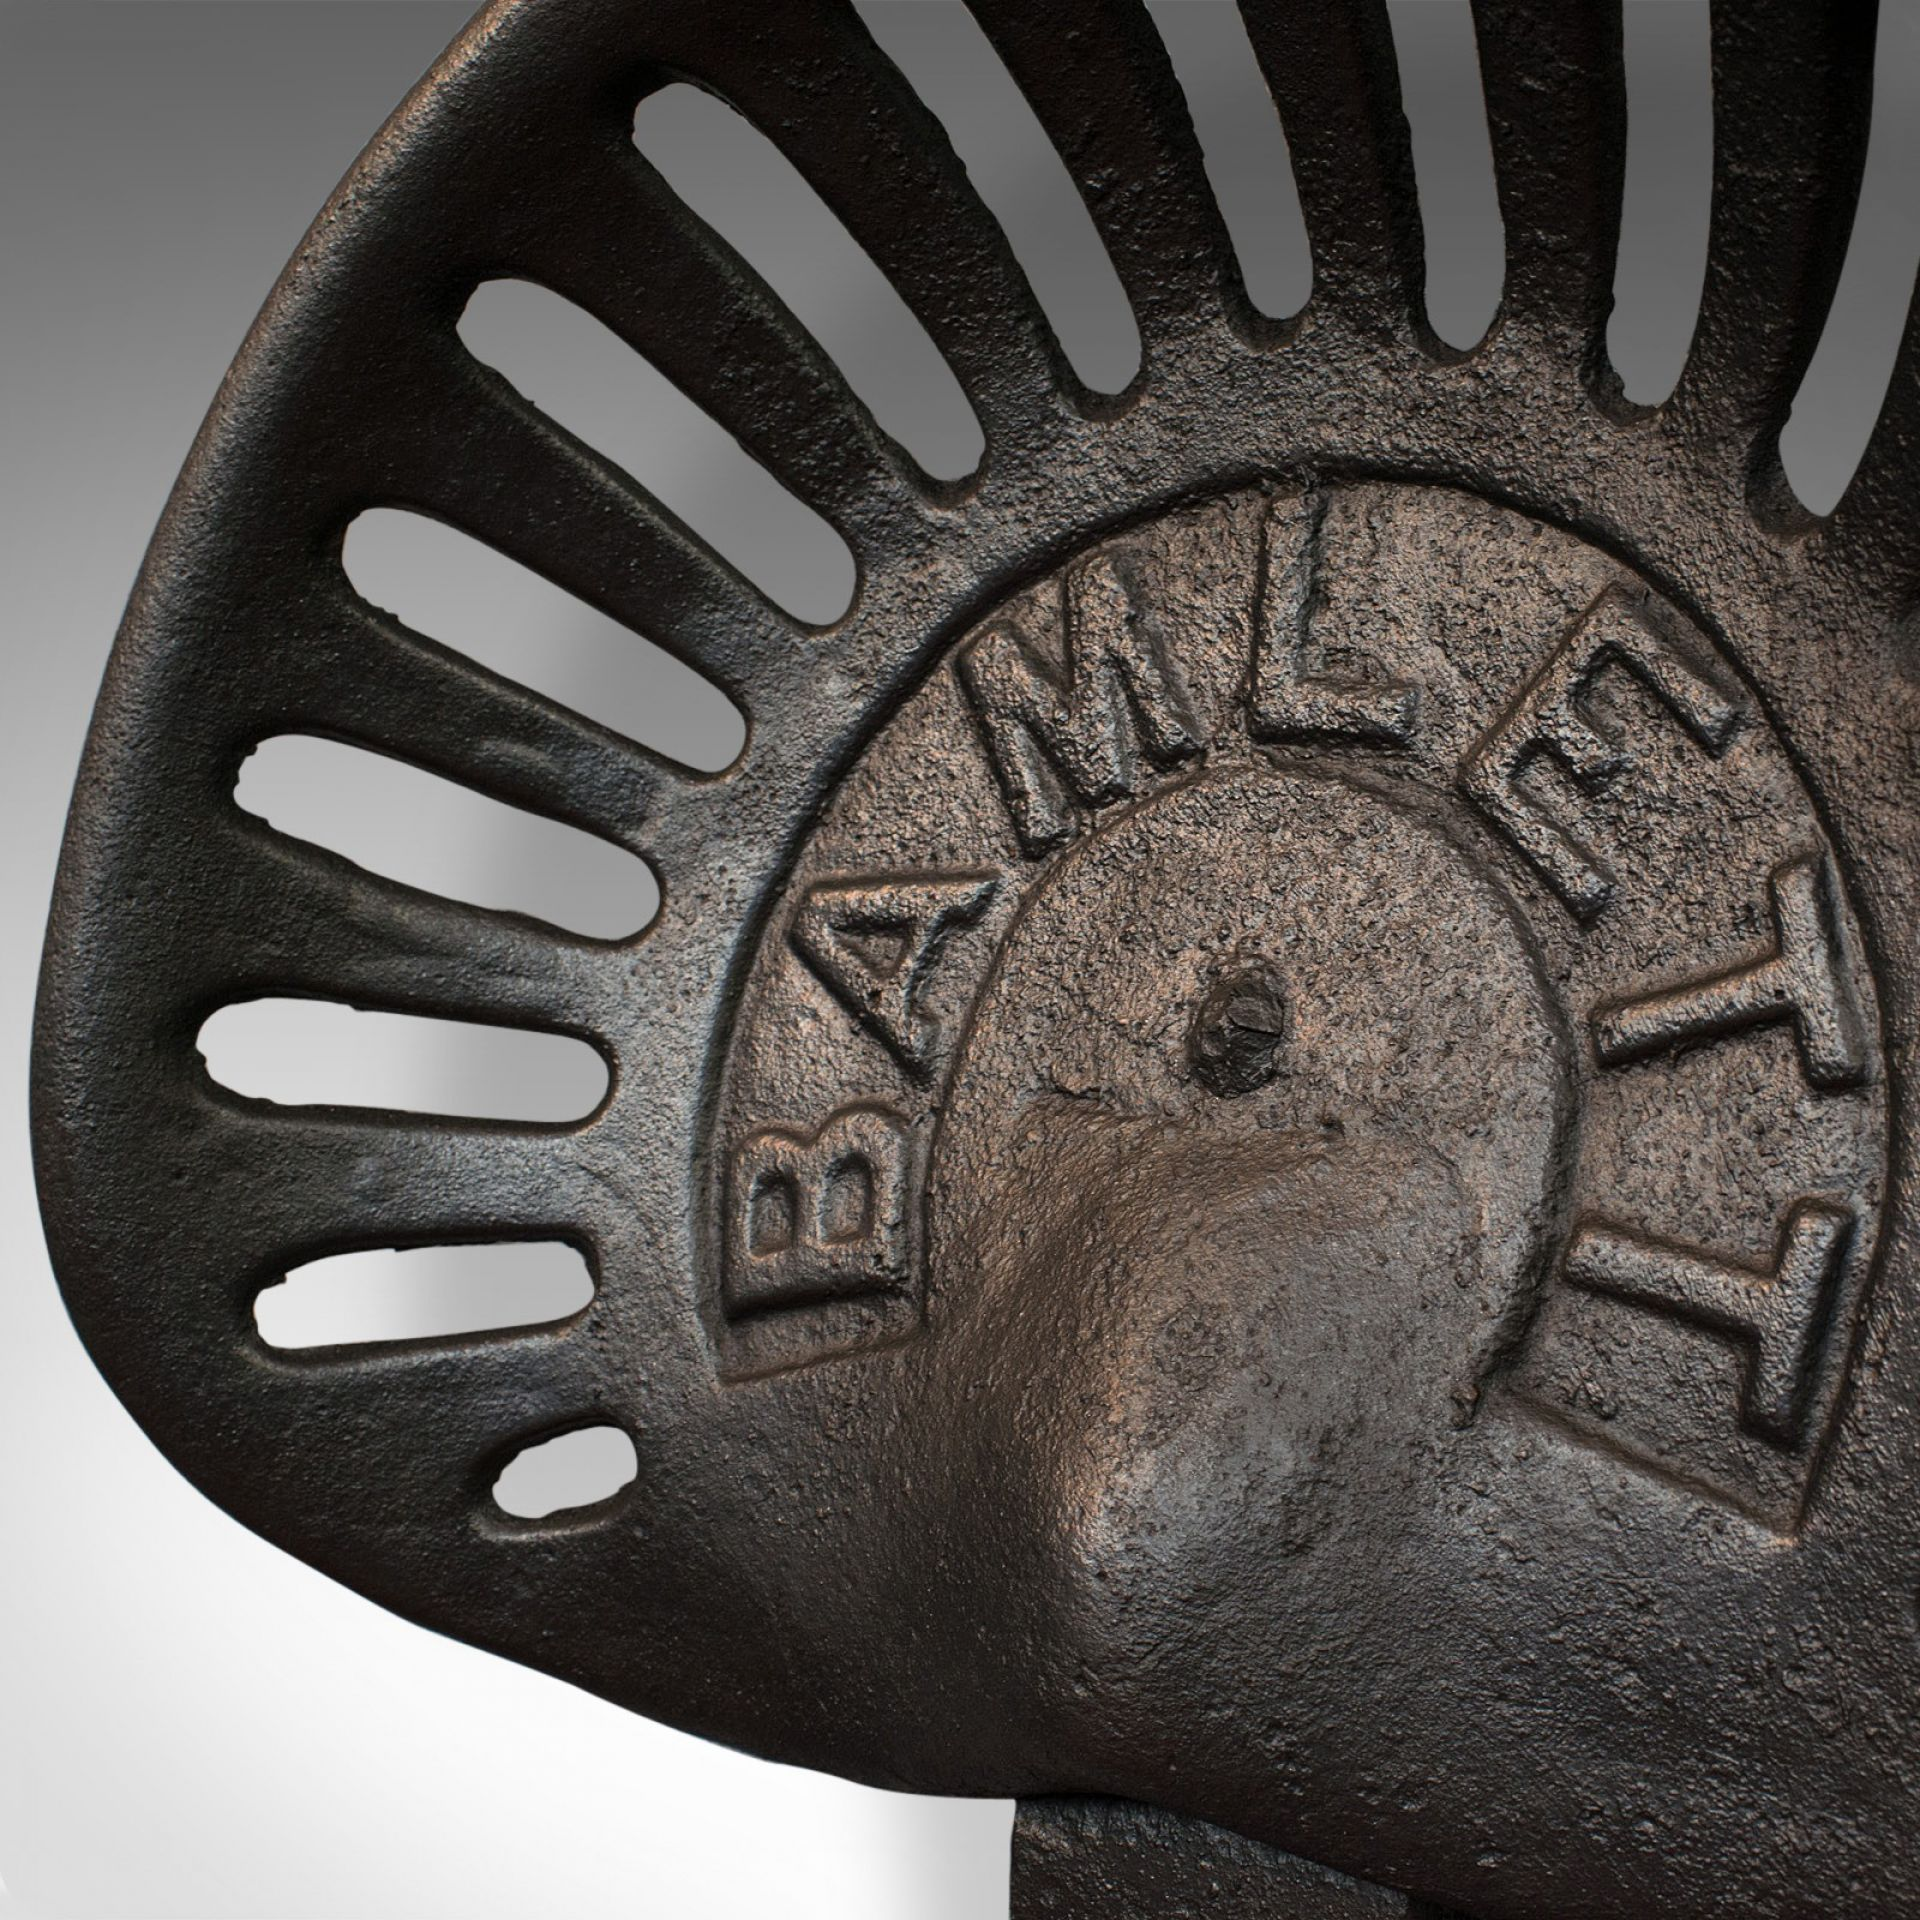 Antique Bamlett Tractor Seat, English, Cast Iron, Decorative, Agricultural